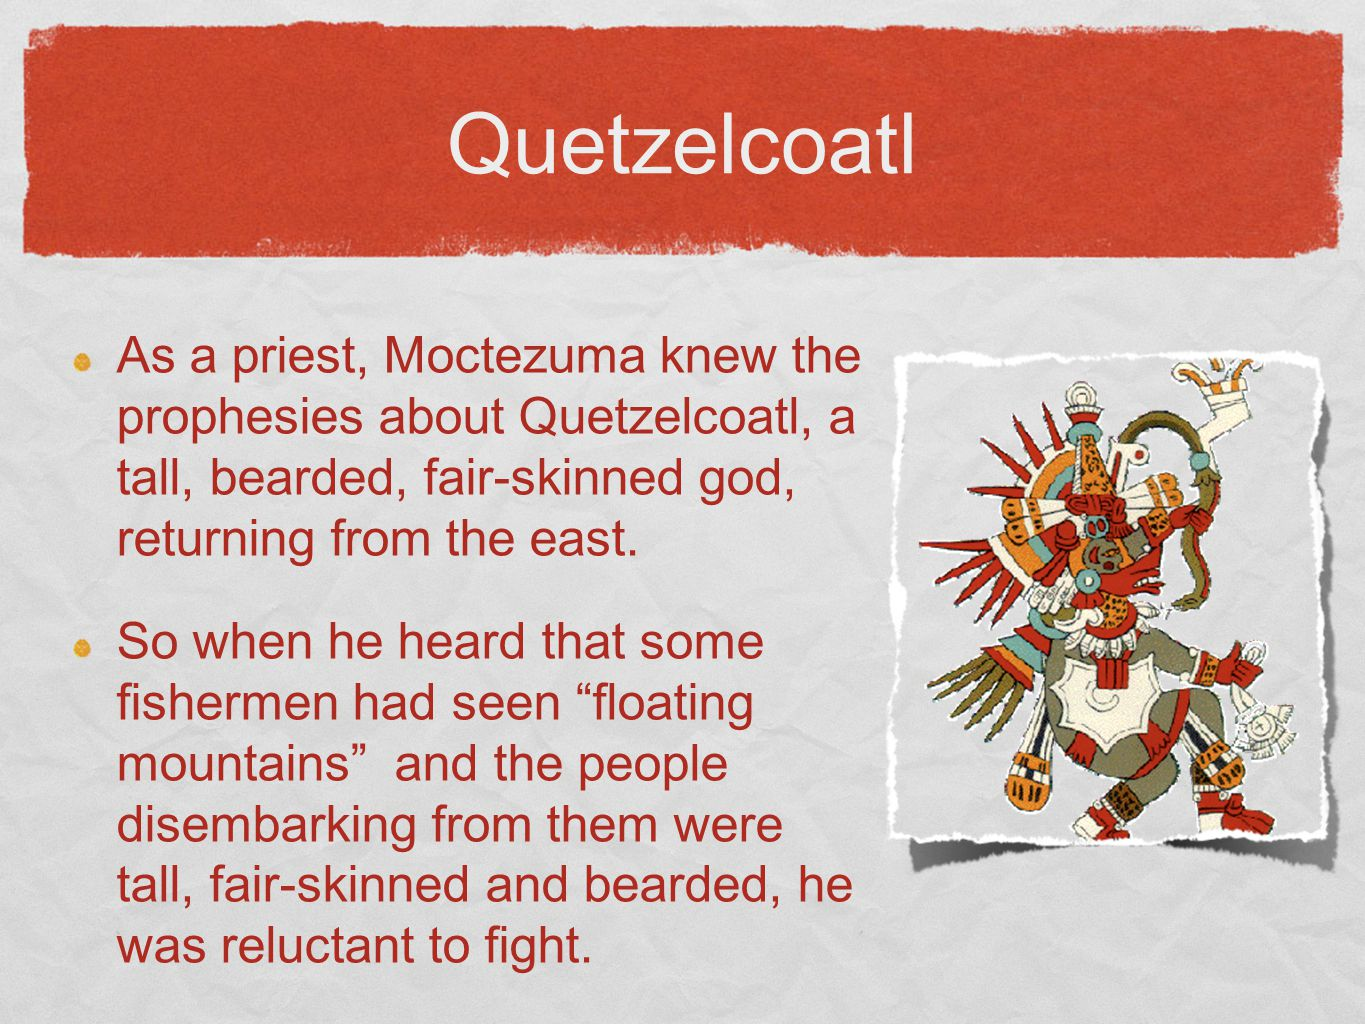 Quetzelcoatl As a priest, Moctezuma knew the prophesies about Quetzelcoatl, a tall, bearded, fair-skinned god, returning from the east.